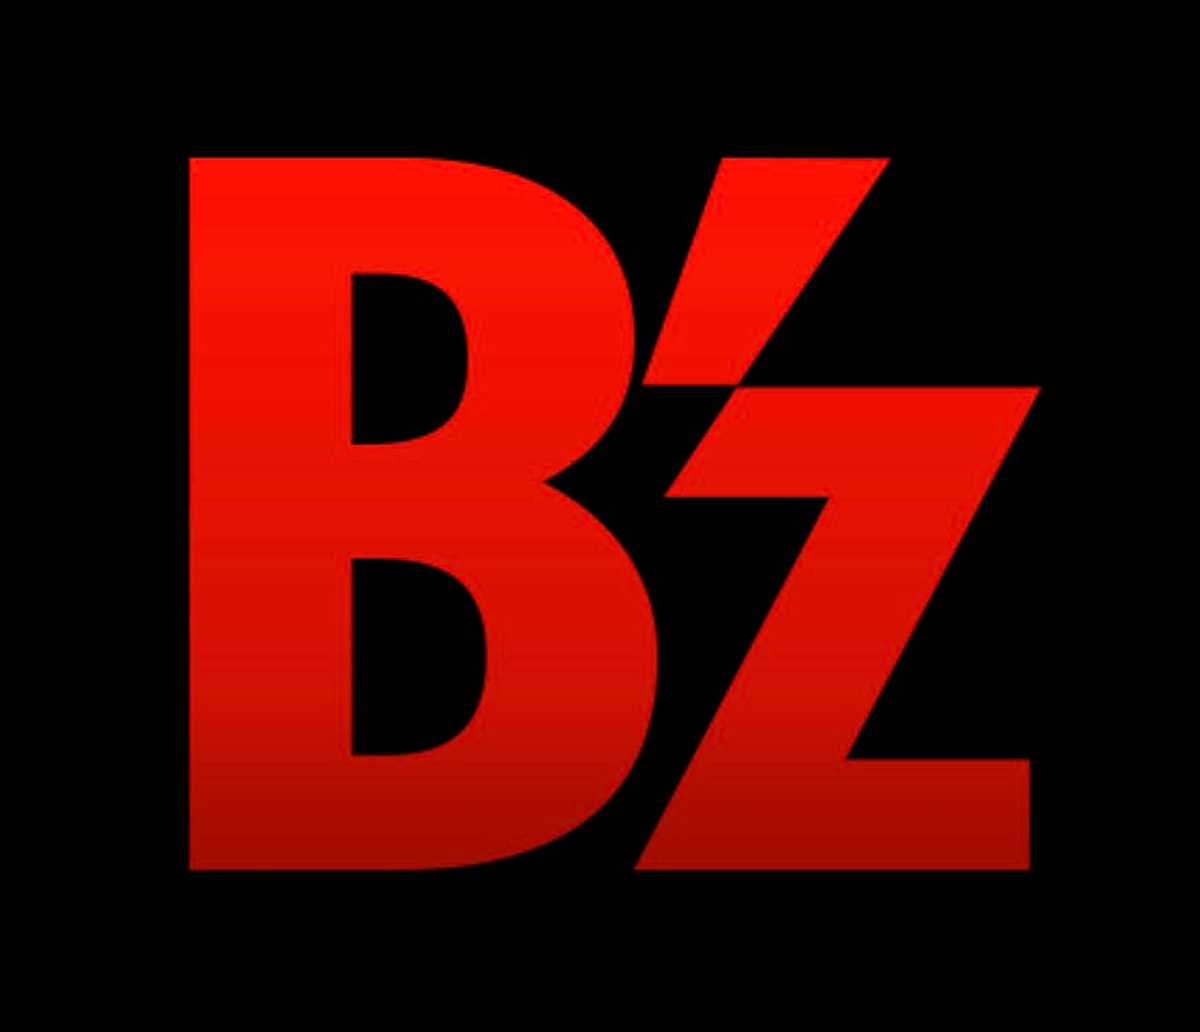 B'z Official LINEのロゴ